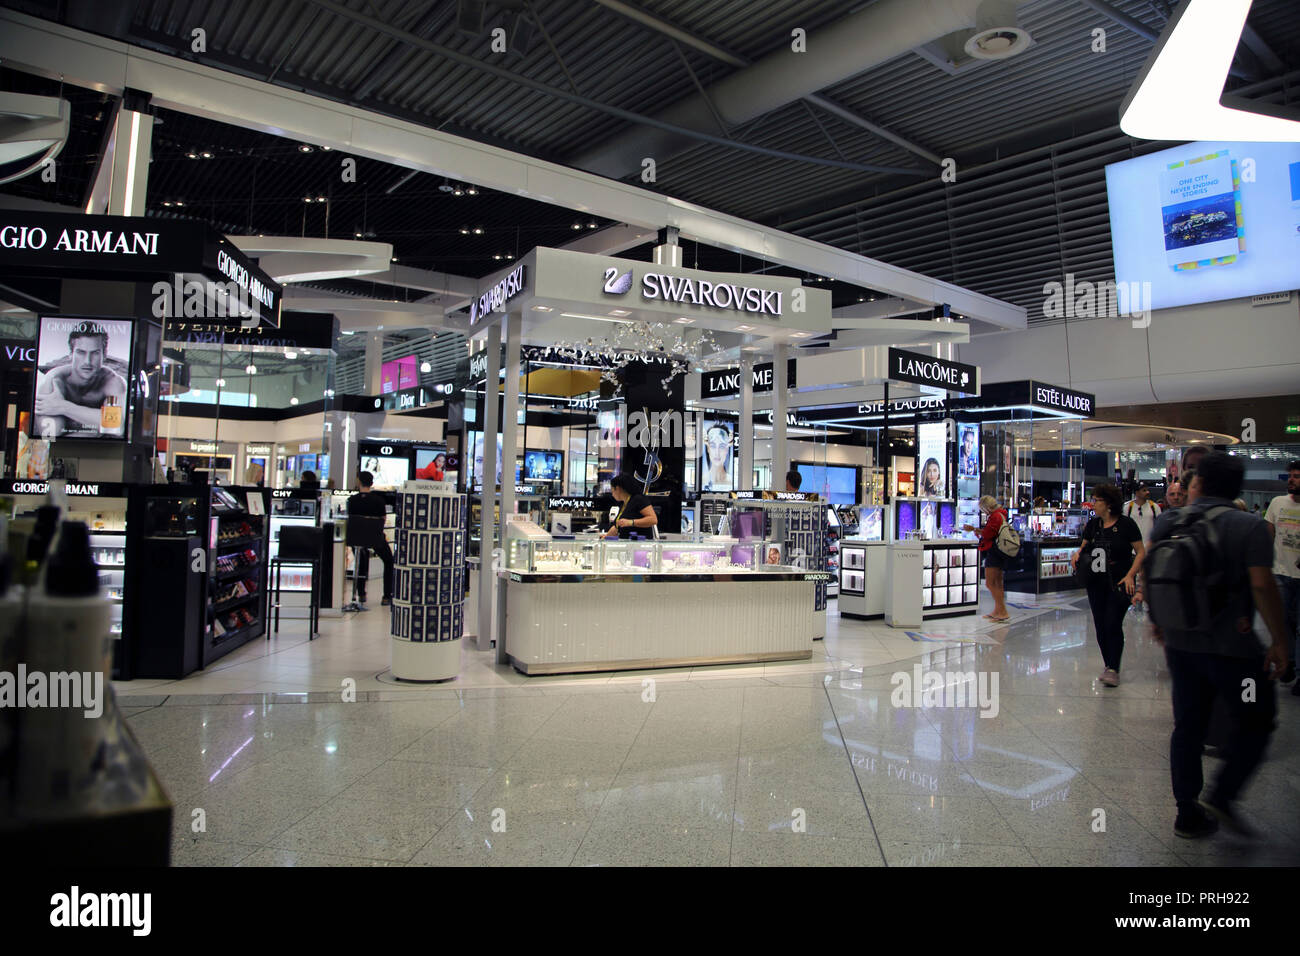 Athens Greece Athens Airport Duty Free Fragrance Counters and Swarovski Jewellery - Stock Image